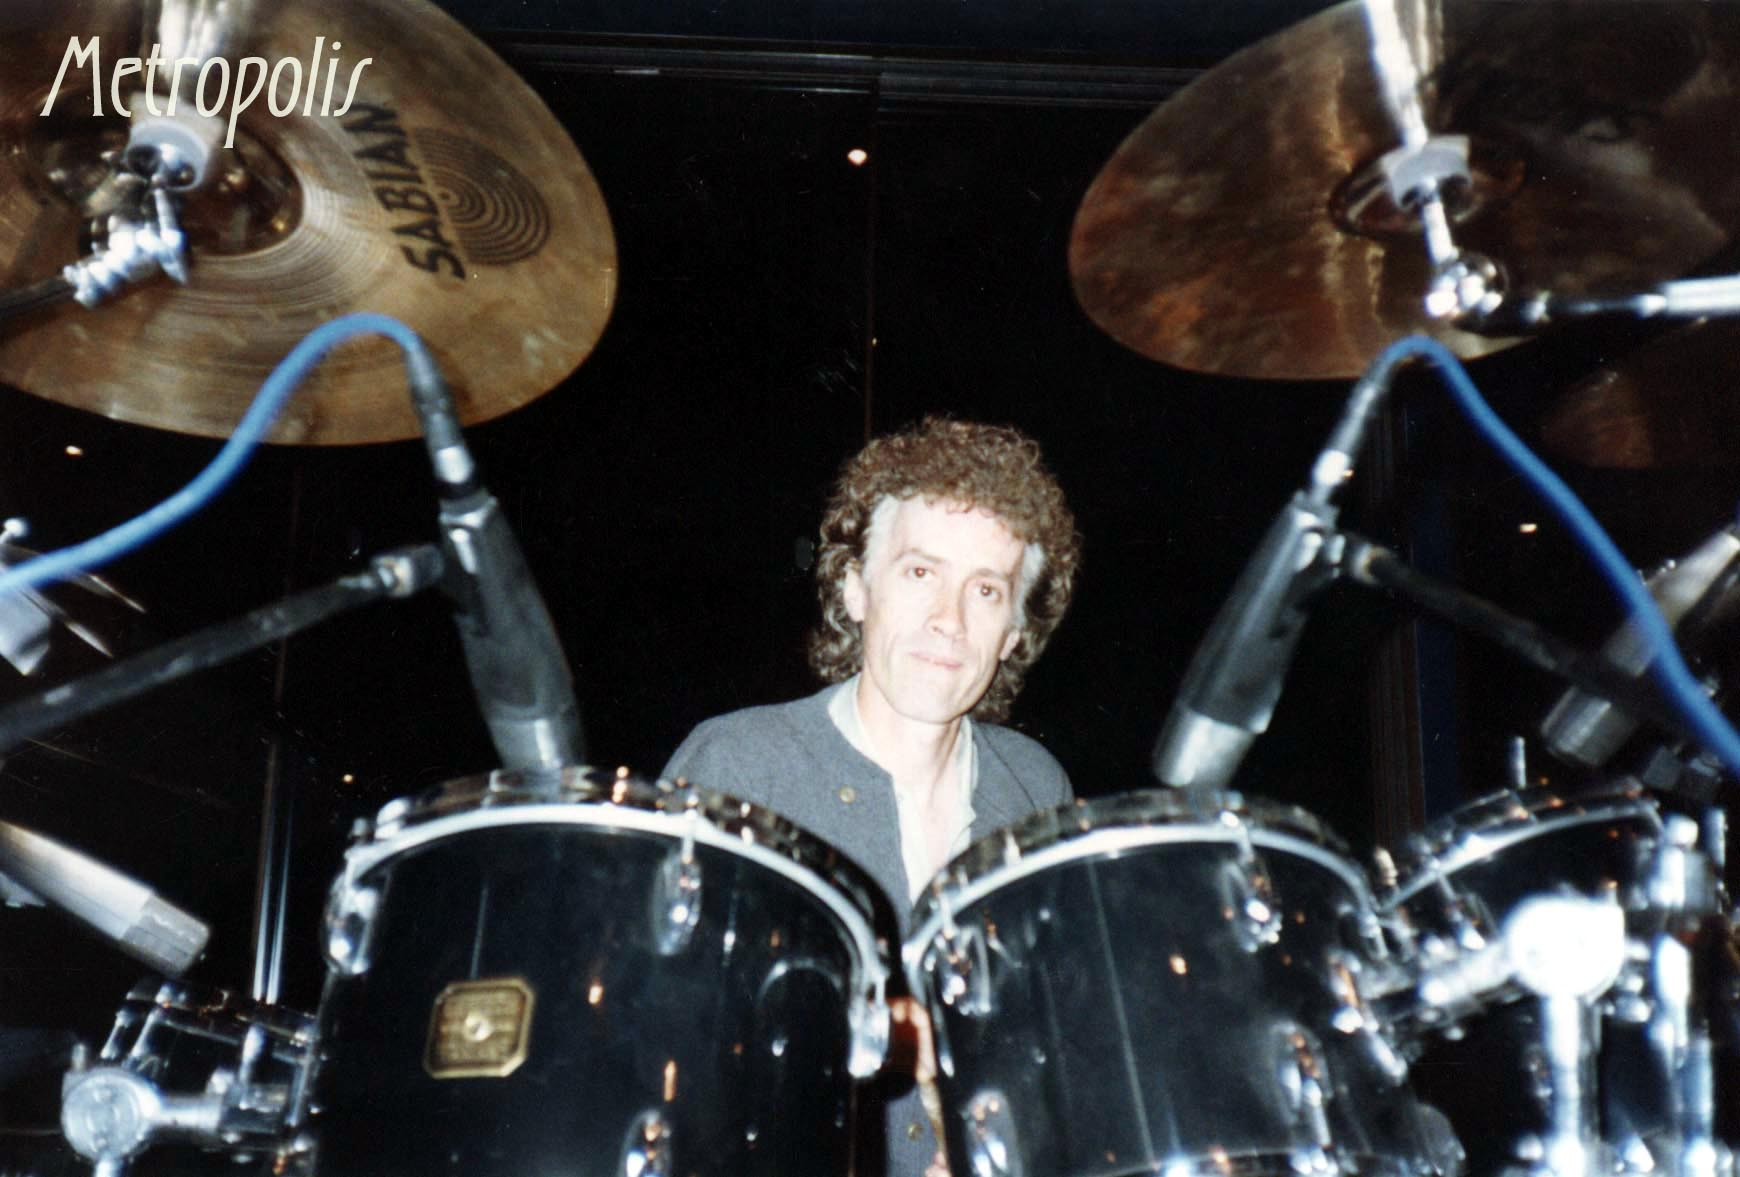 Rupert Hine 1990 playing on Geoff Dugmore's drums 1990